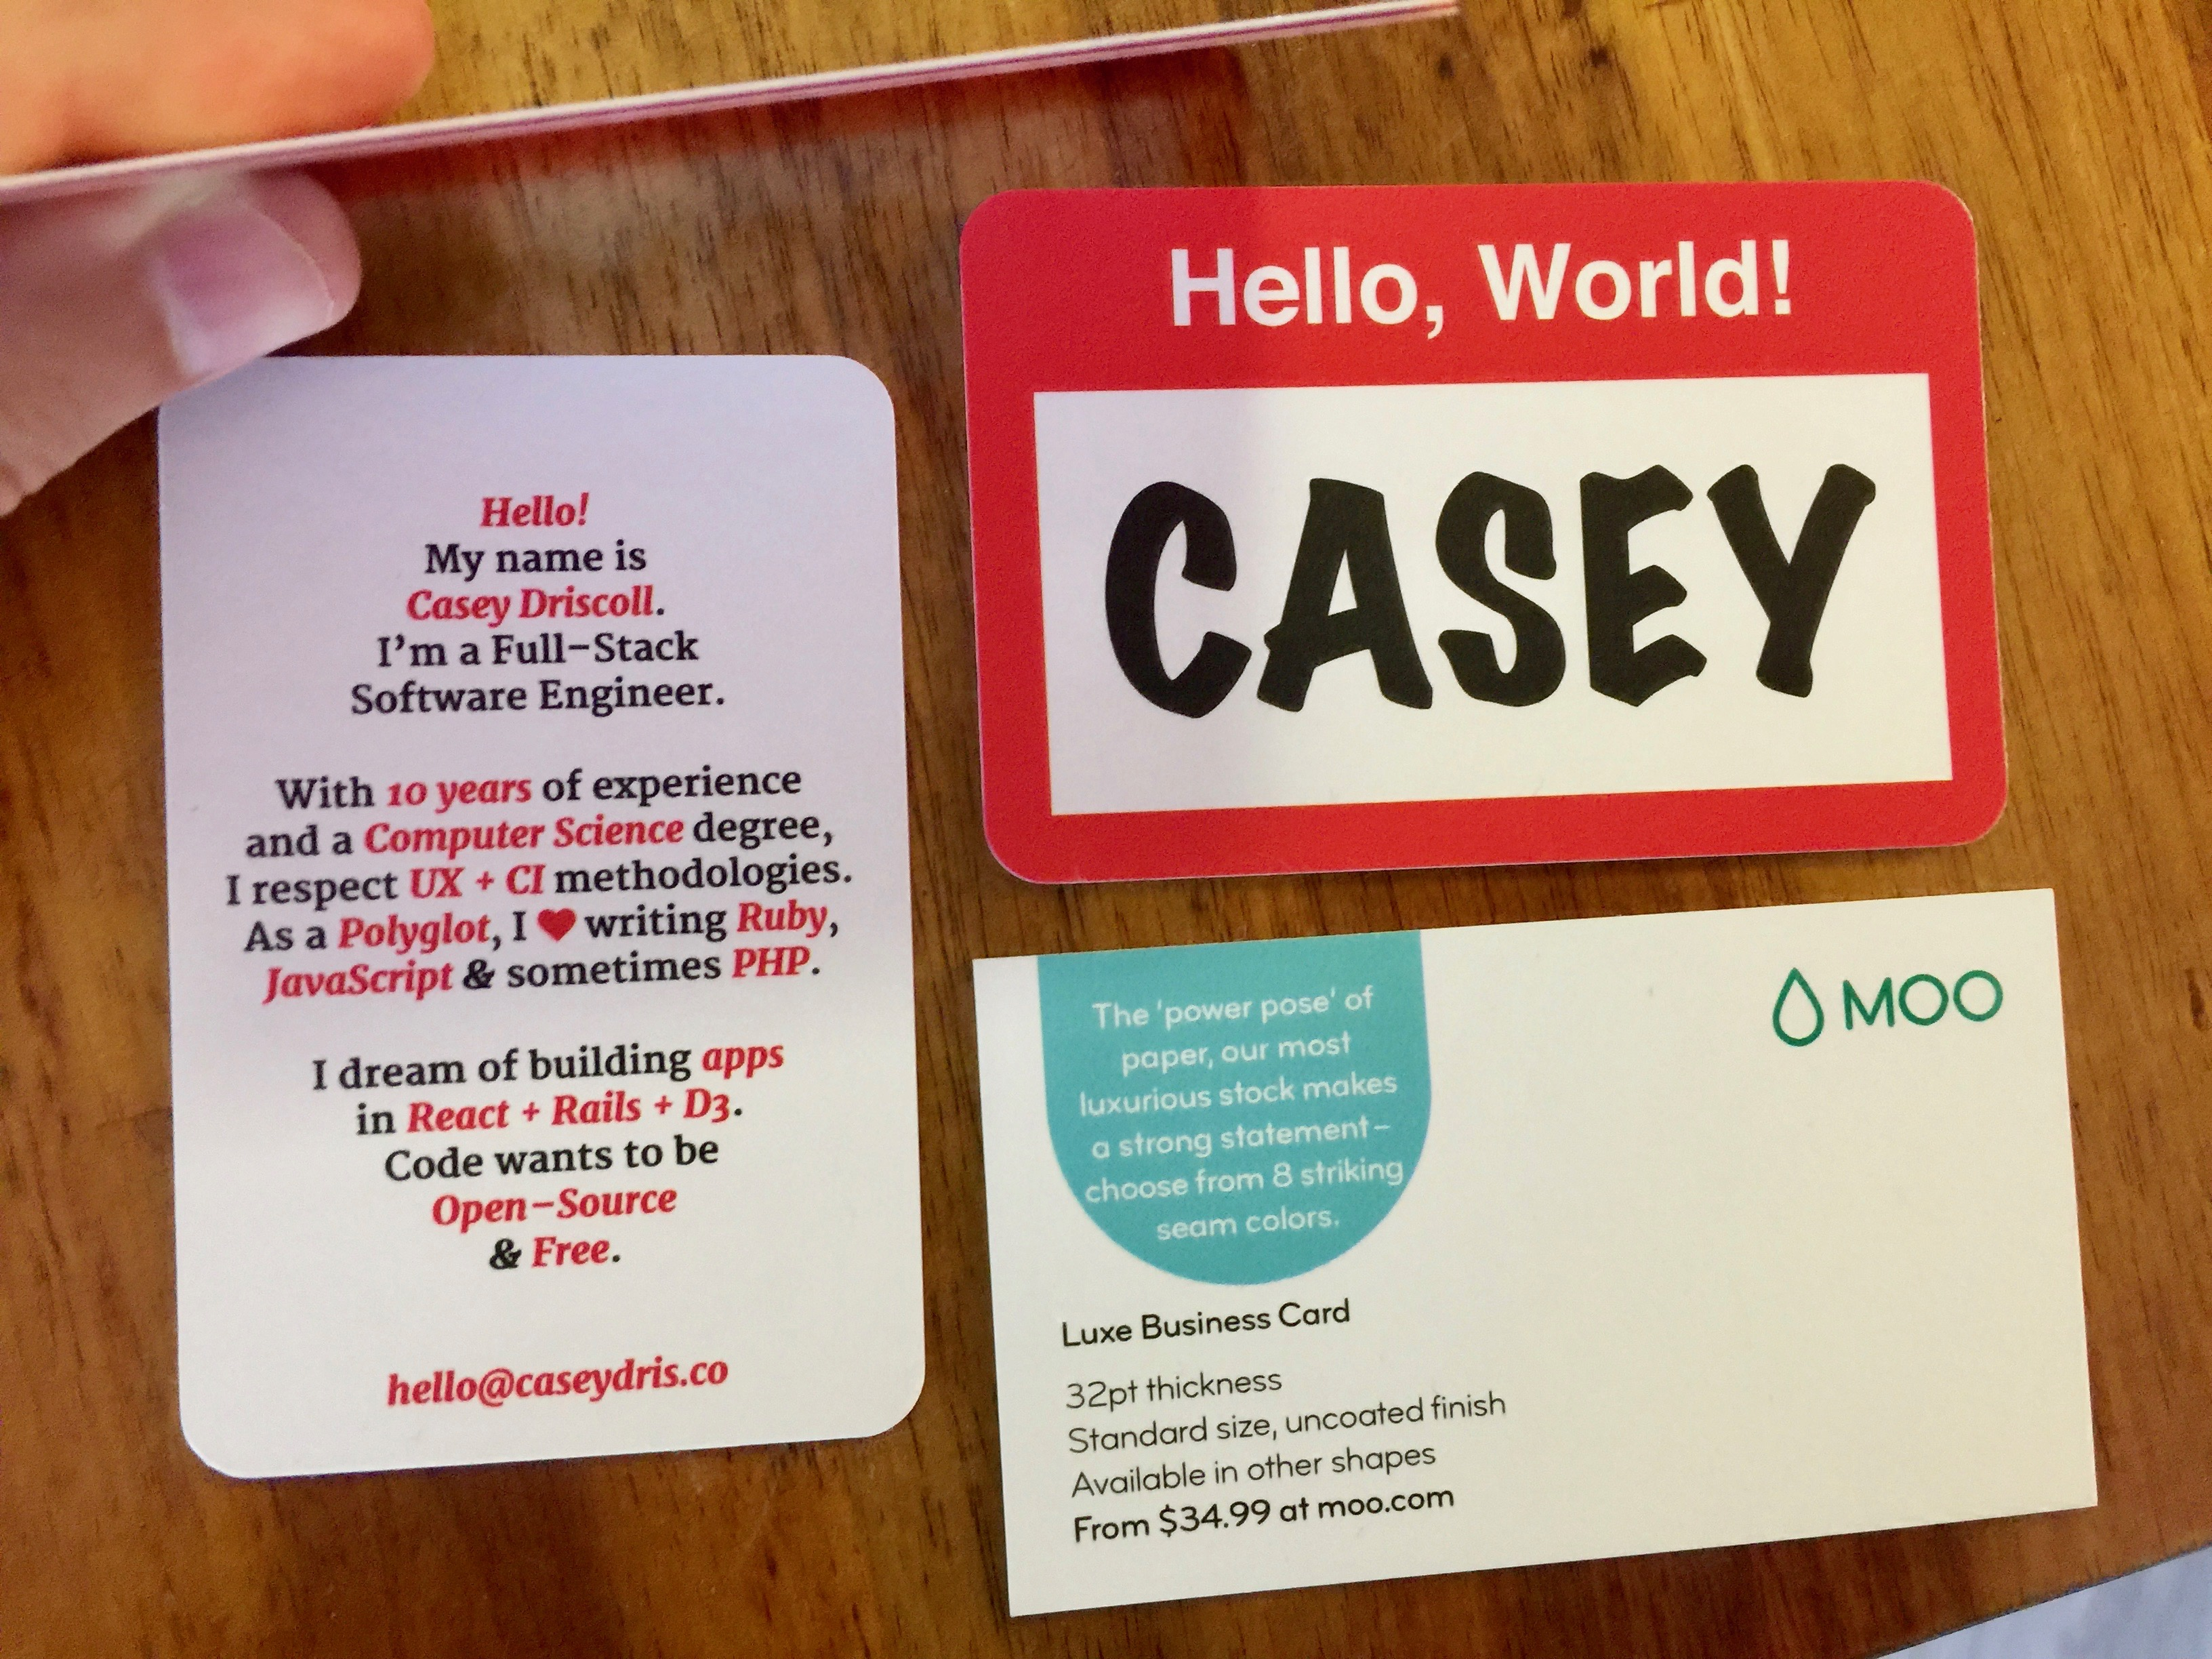 Hello new personal business card casey driscoll the moo size cards are more square shaped compared to a conventional business card colourmoves